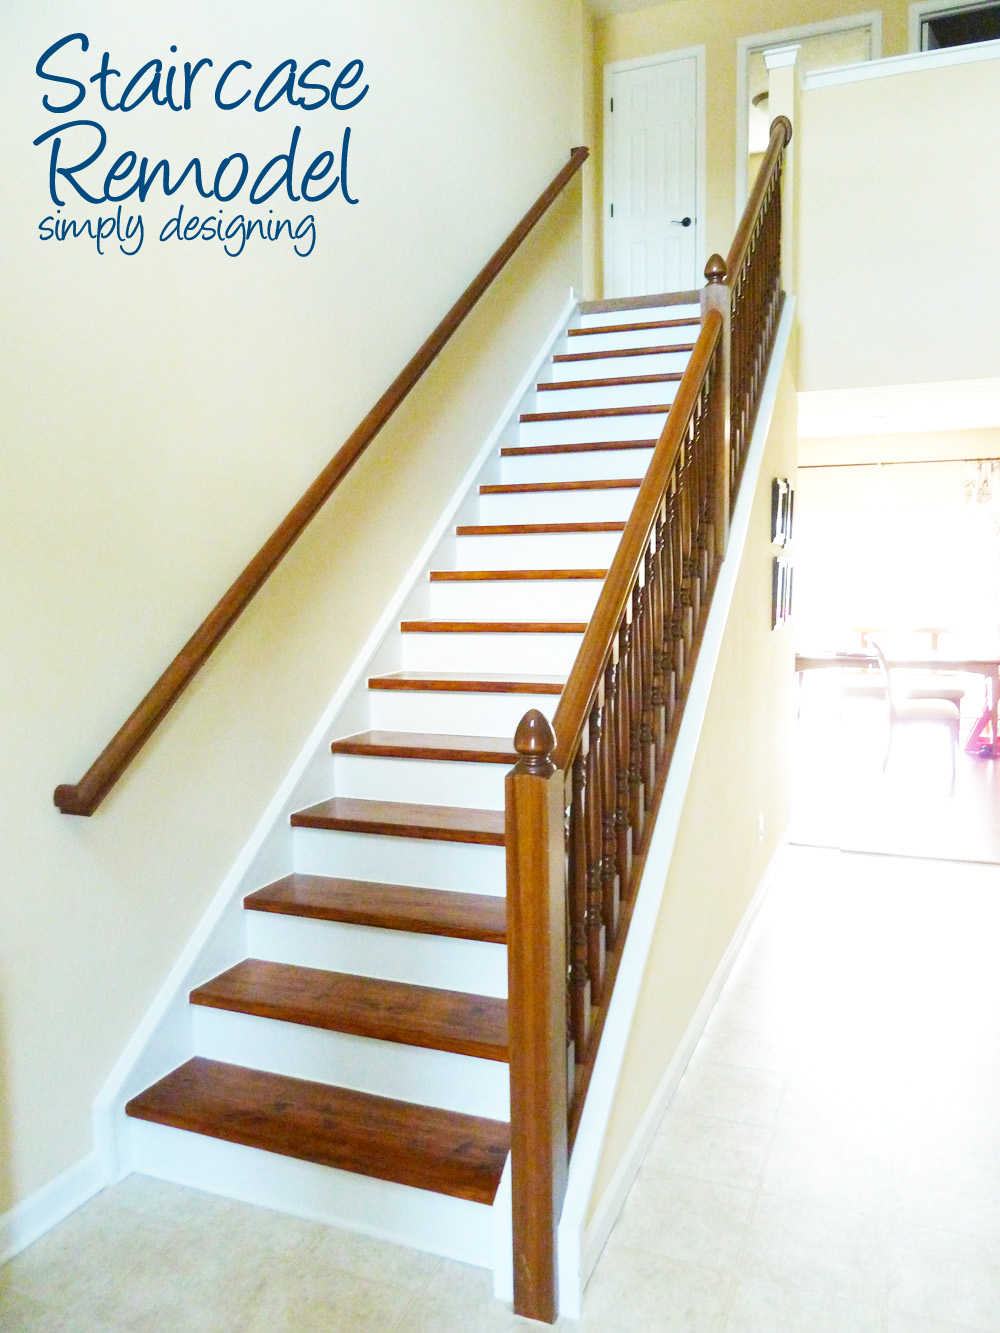 Staircase Remodel Step By Instructions On How To Rip Up Carpet And Refinish Wood